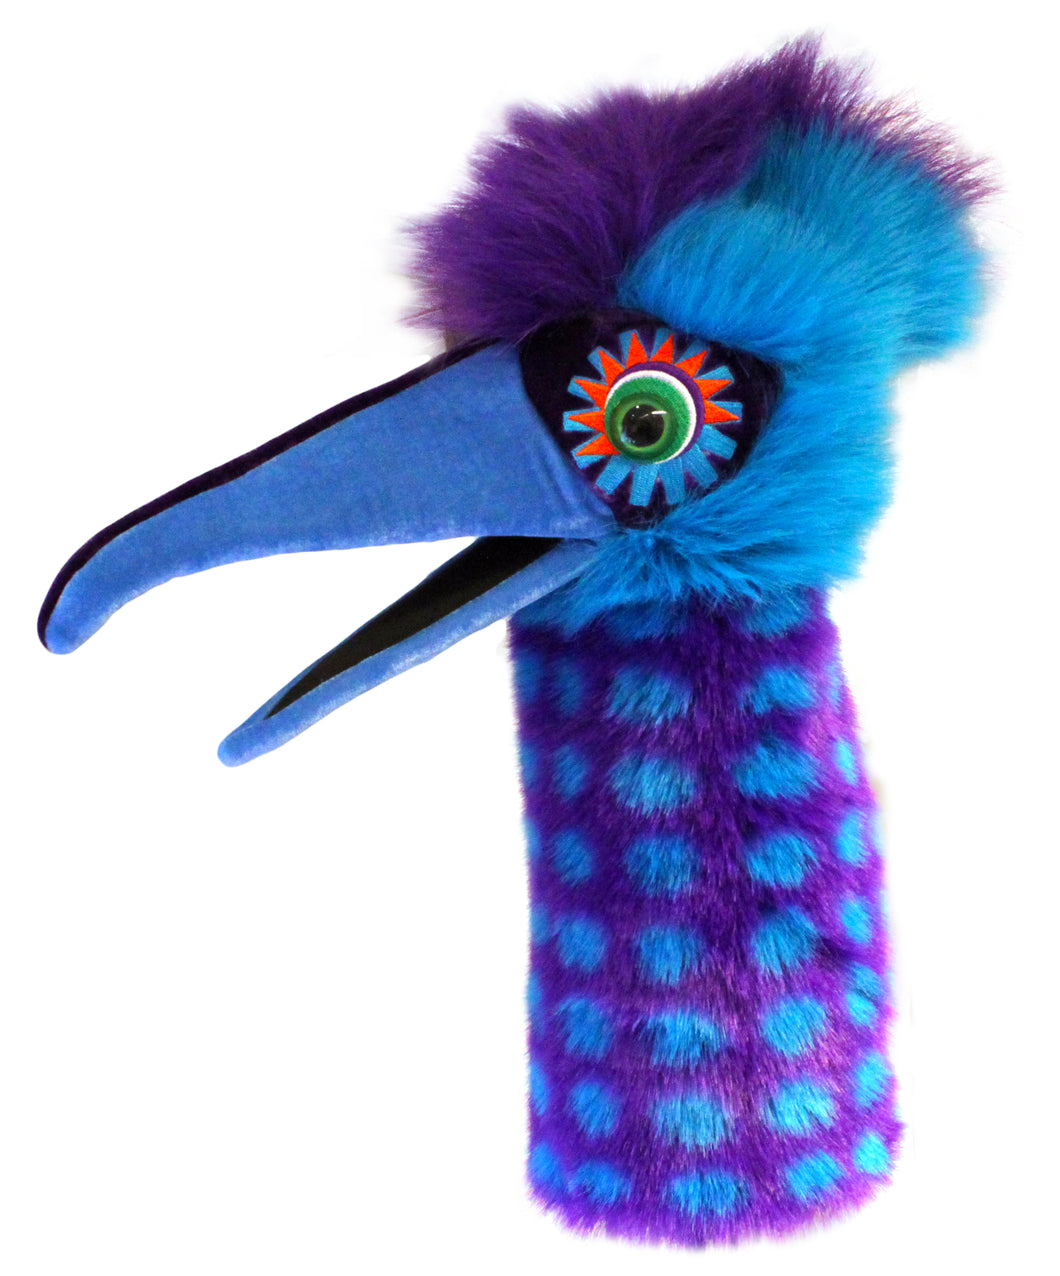 P466-PC006308-marionnette-Pickle-Oiseau-The-Puppet-Company-Snappers